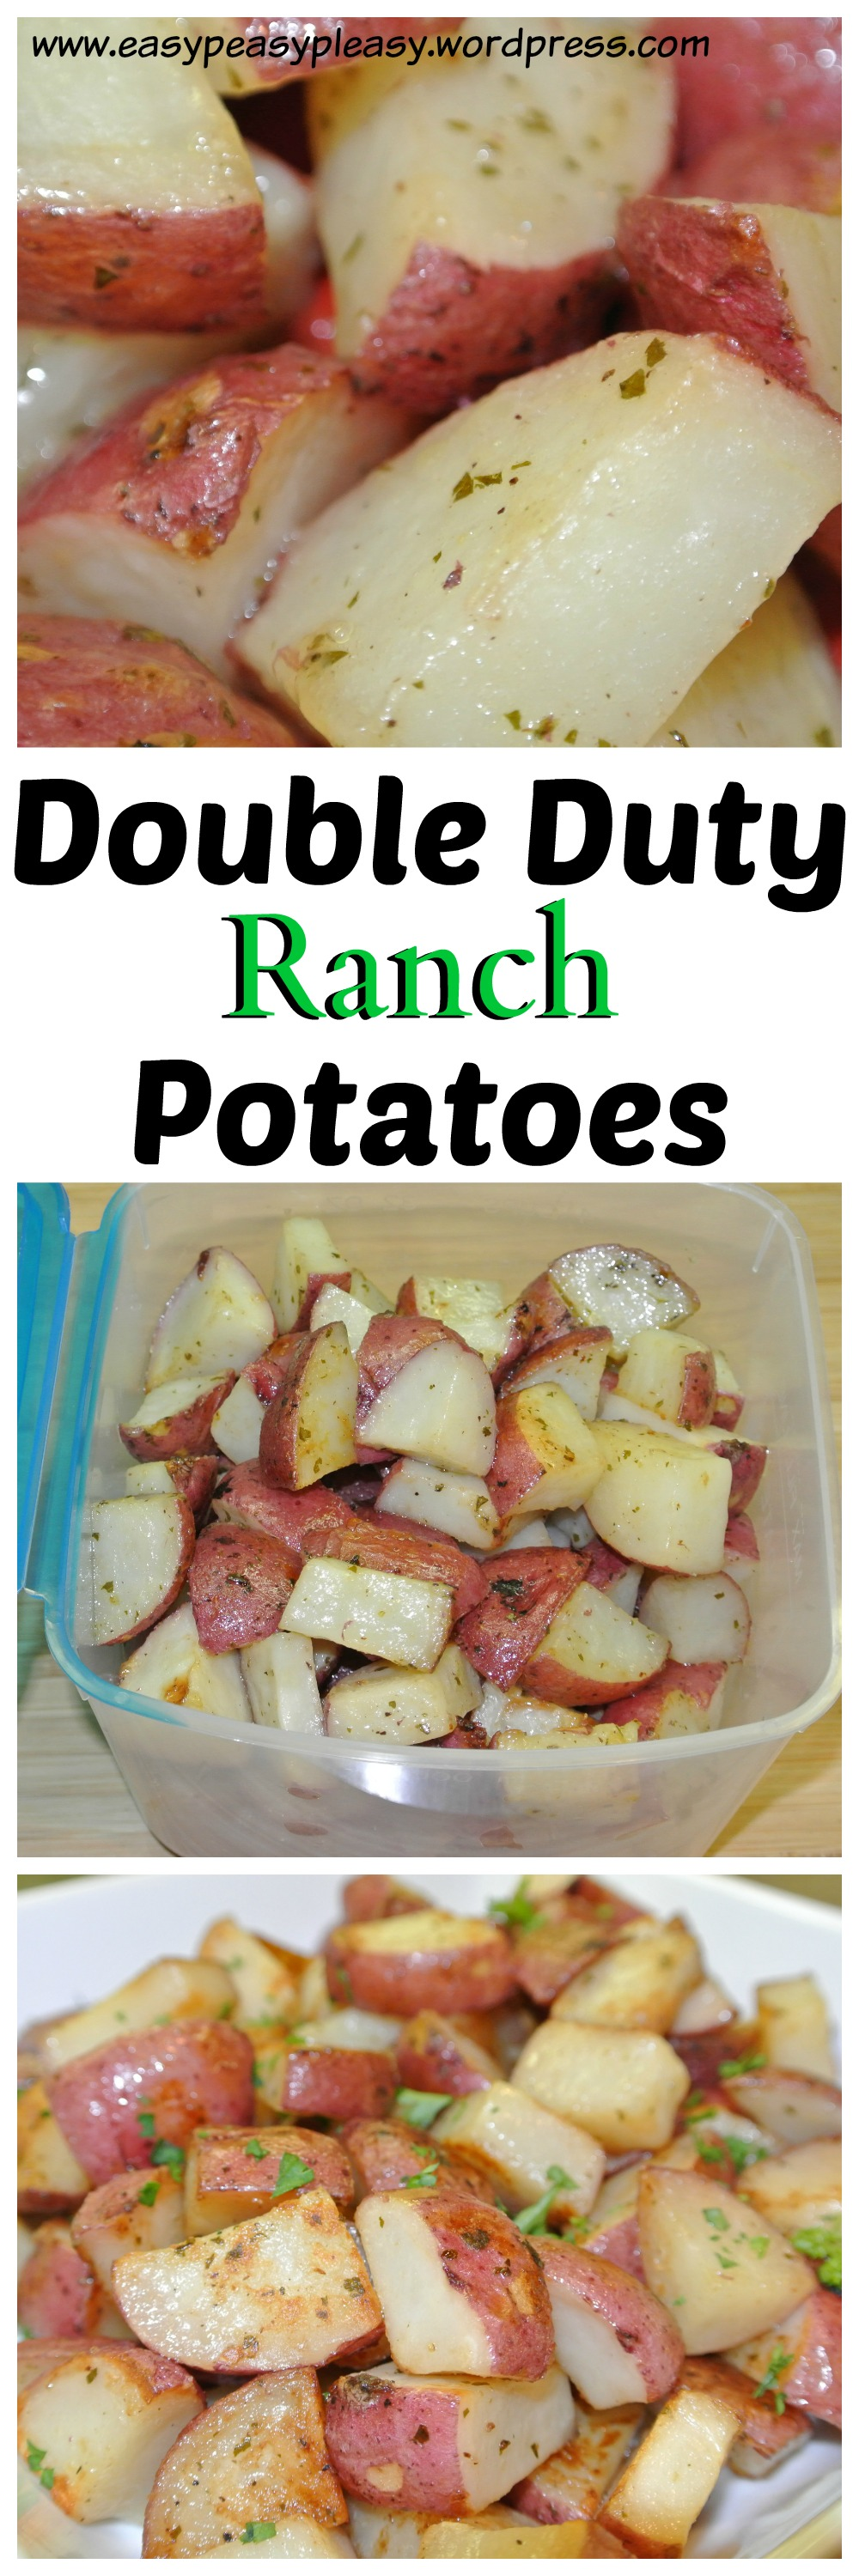 Double Duty Ranch Potatoes Recipe Idea found at https://easypeasypleasy.com